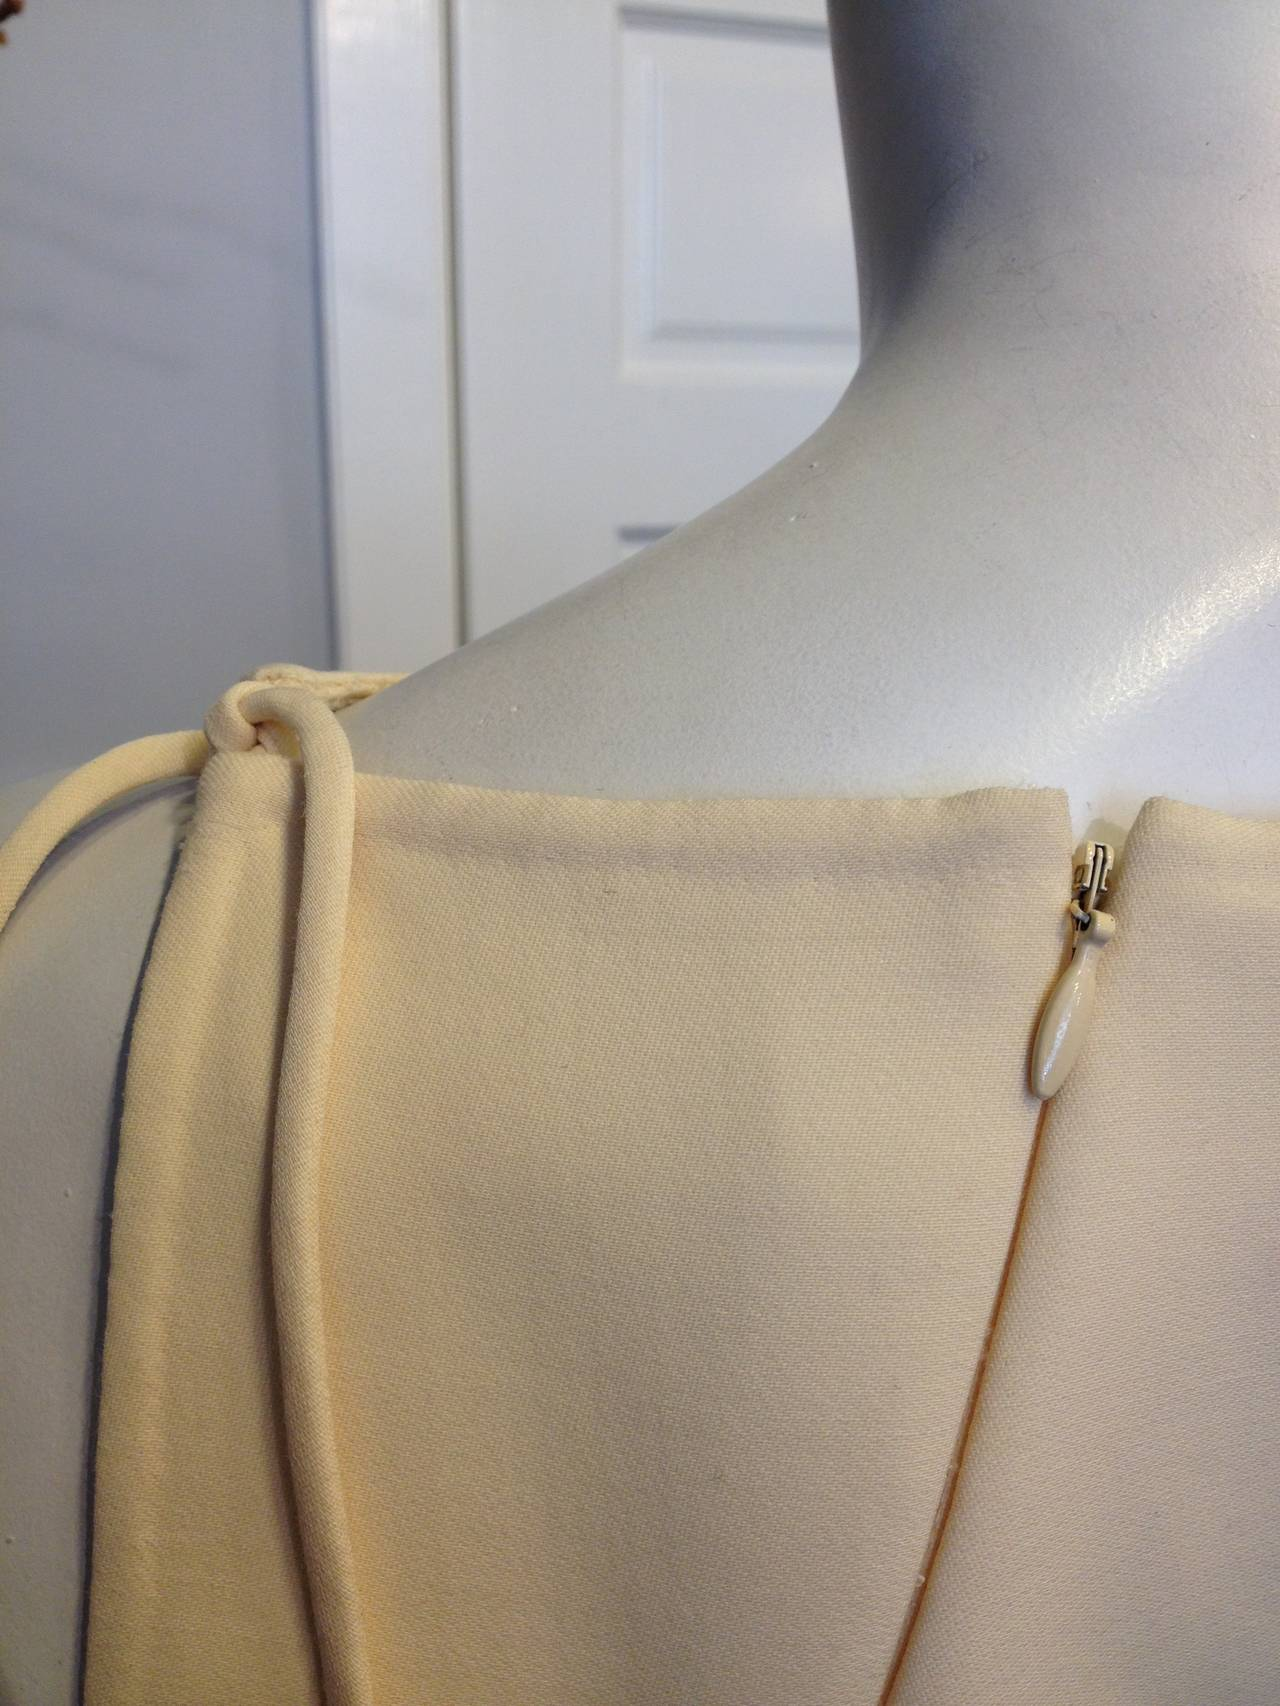 Chado Cream Sleeveless Dress In Excellent Condition For Sale In San Francisco, CA